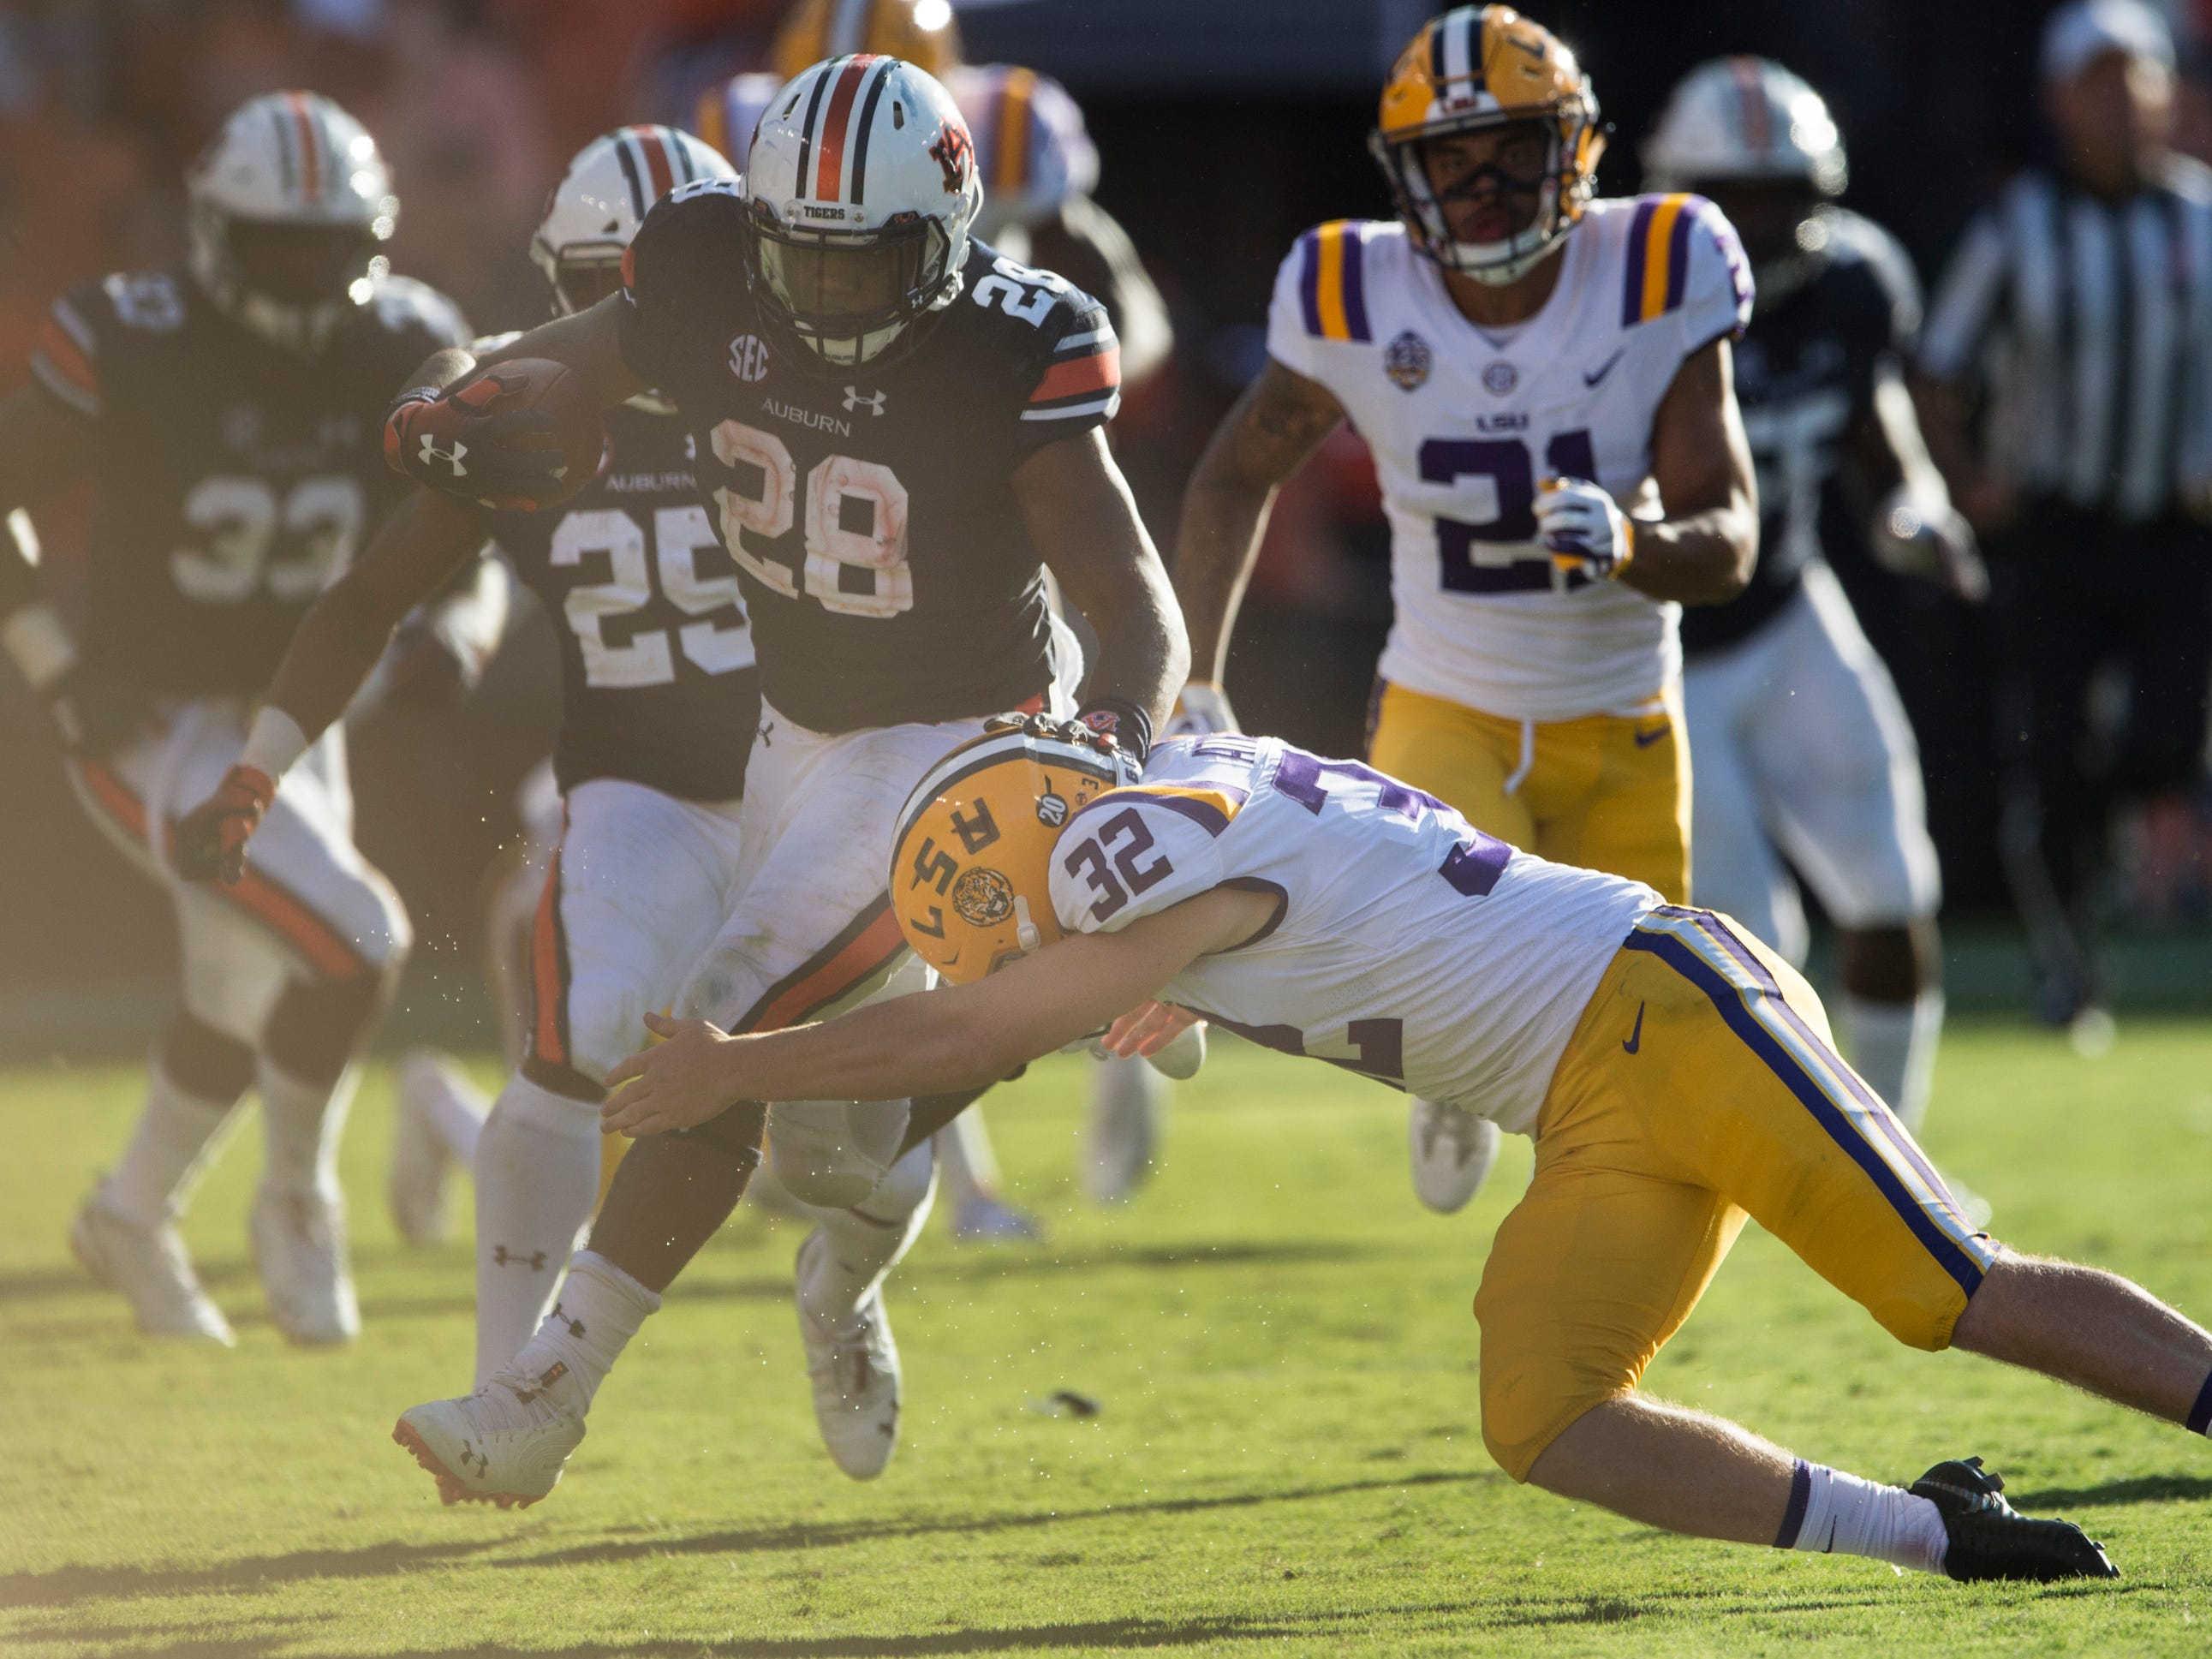 Auburn's JaTarvious Whitlow (28) is pushed out of bounds by Auburn's Sam Sherrod (32) at Jordan-Hare Stadium in Auburn, Ala., on Saturday, Sept. 15, 2018. LSU defeated Auburn 22-21.